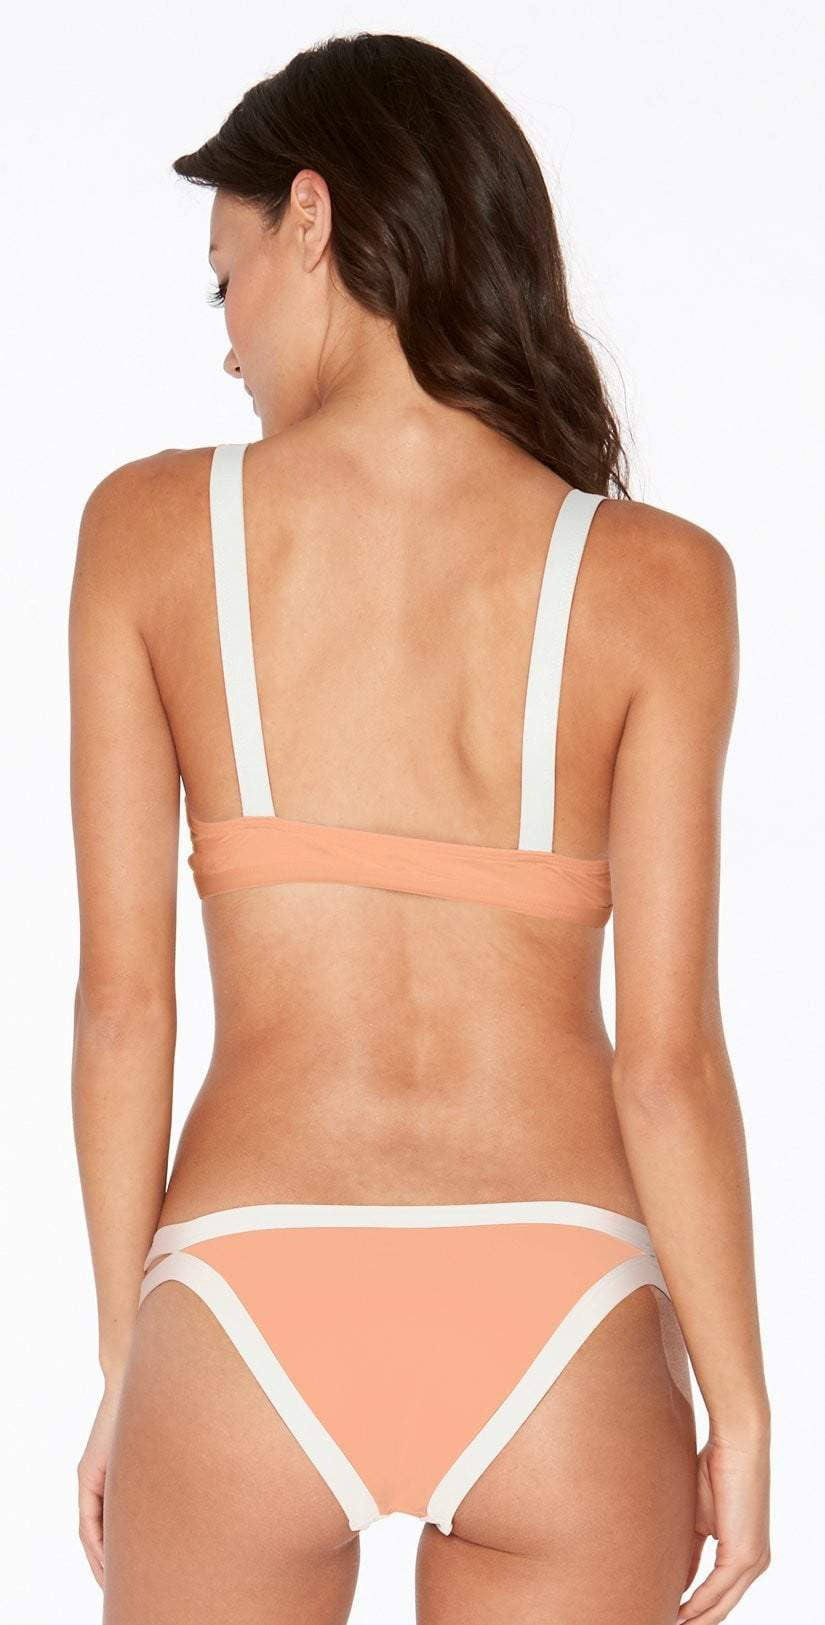 L Space Farrah Top in Tropical Peach CBFAT18-TRP: